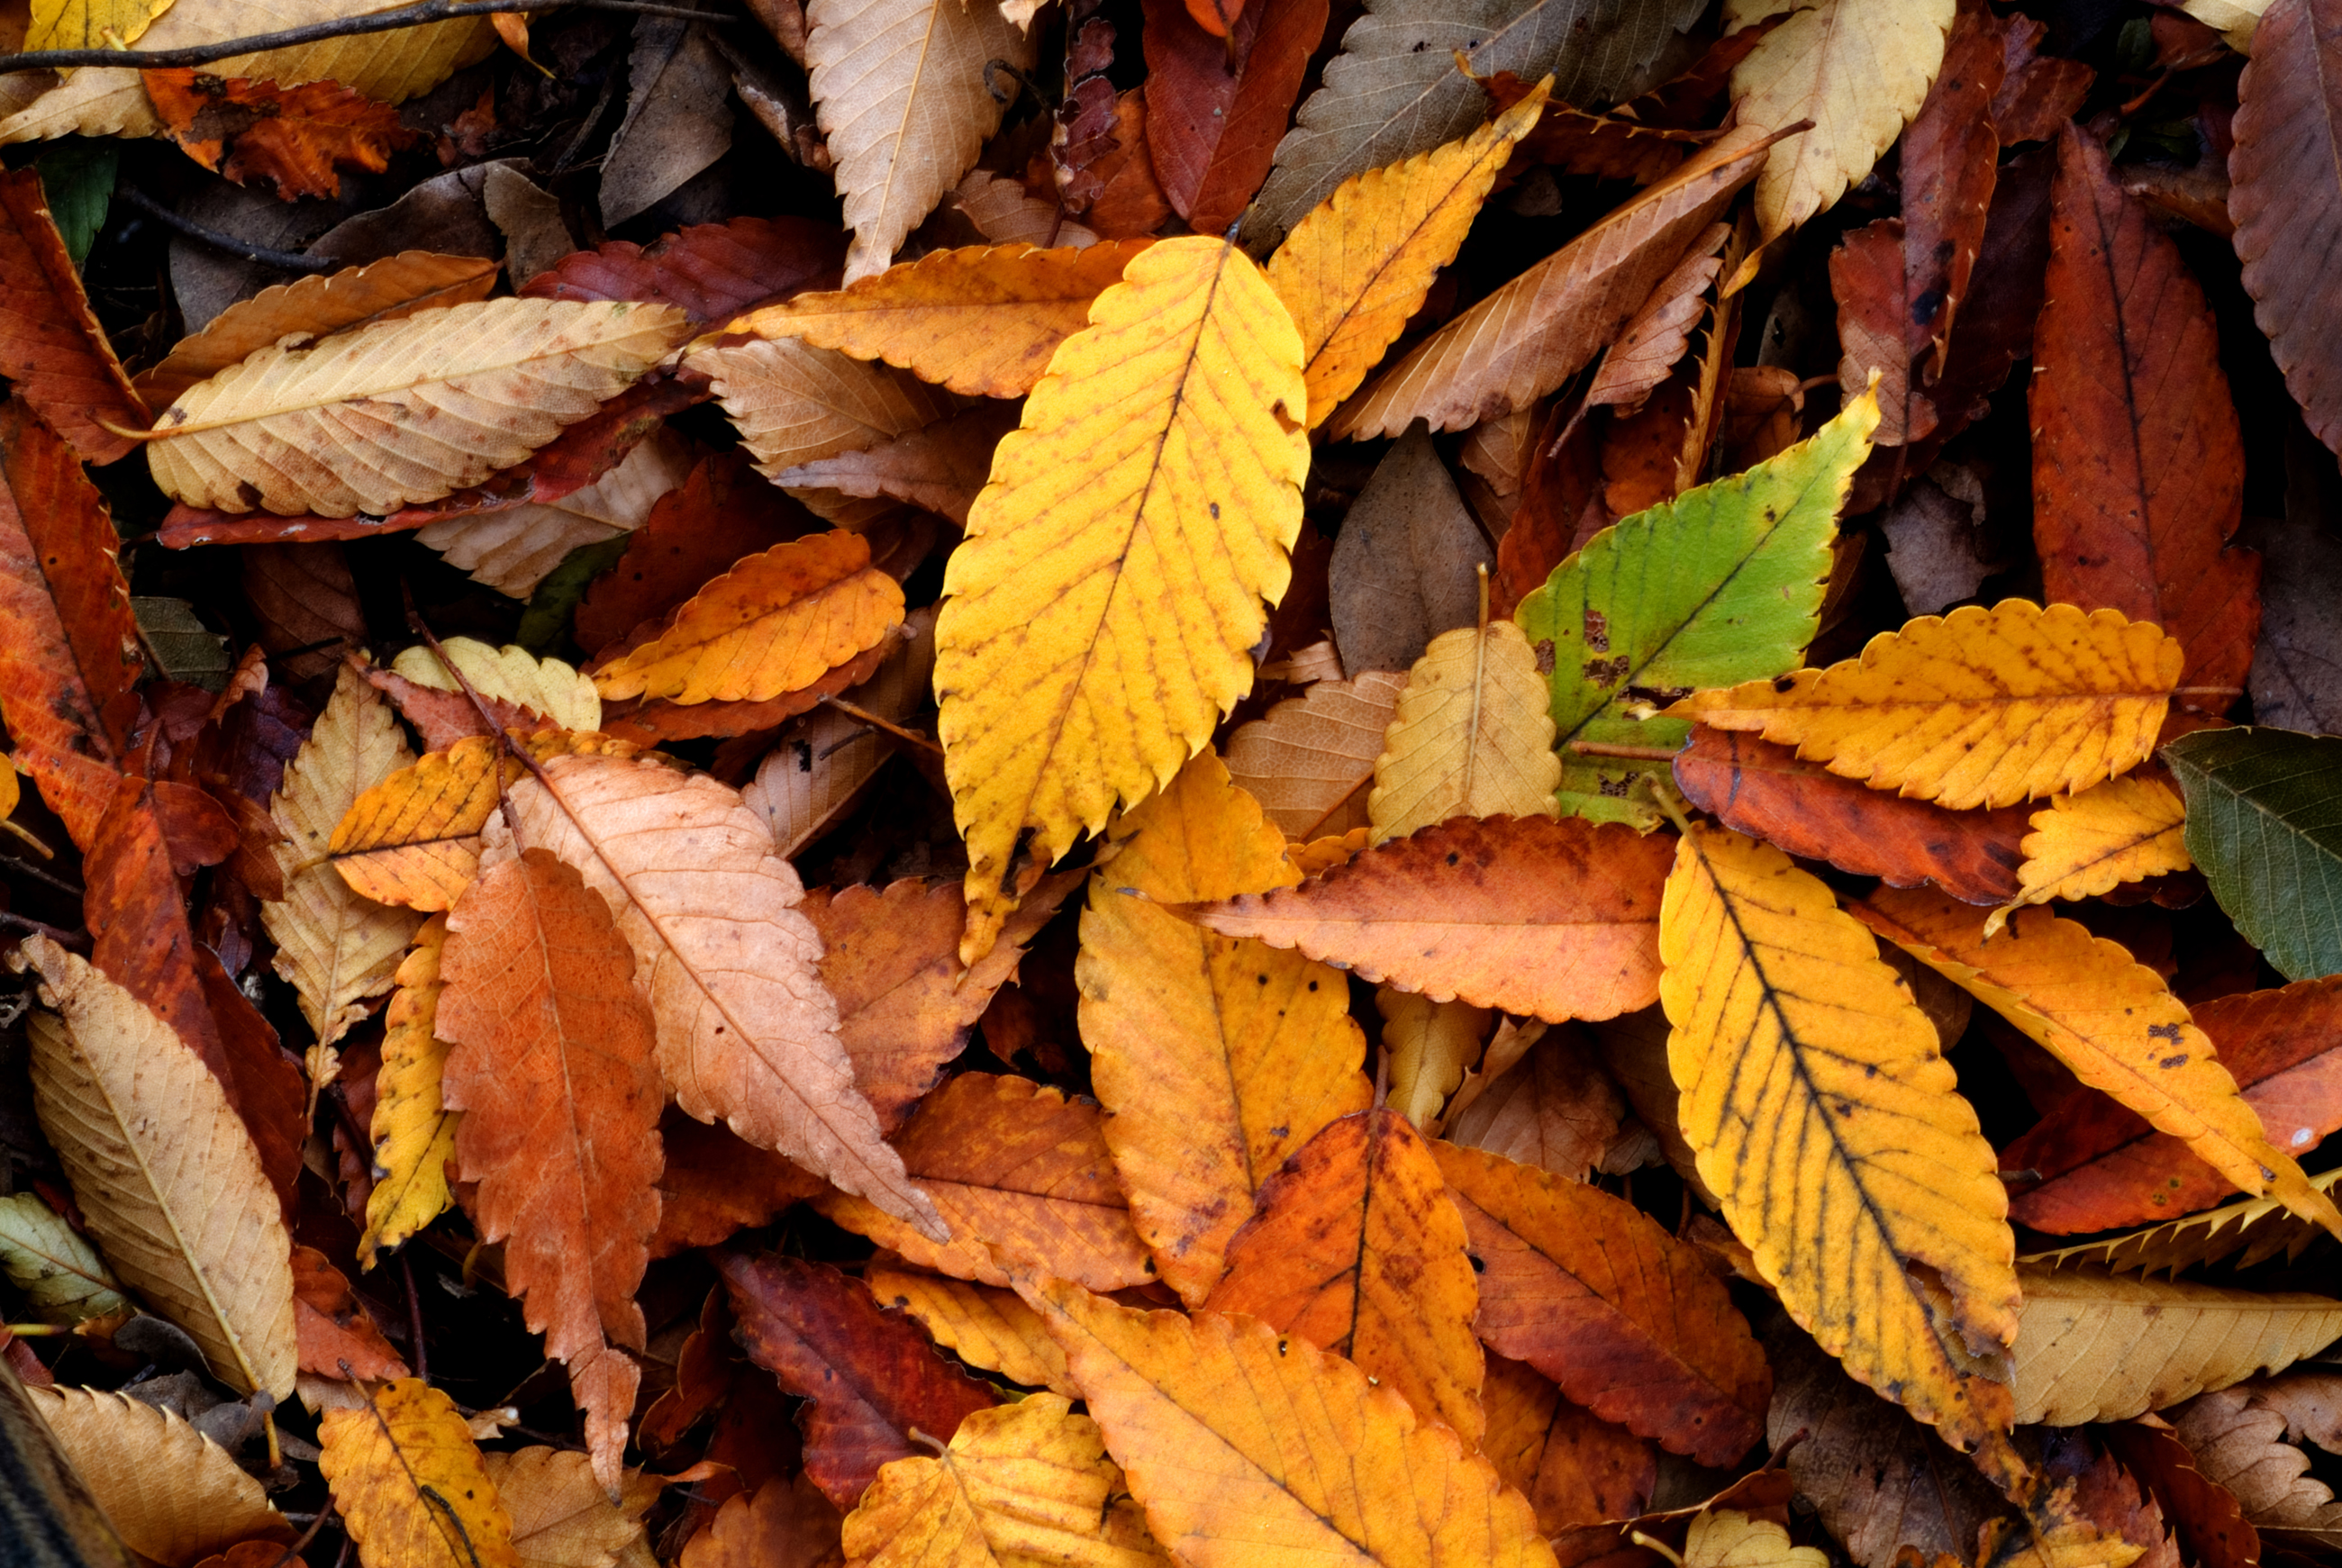 File:Autumn Leaf 08Nov17.jpg - Wikimedia Commons